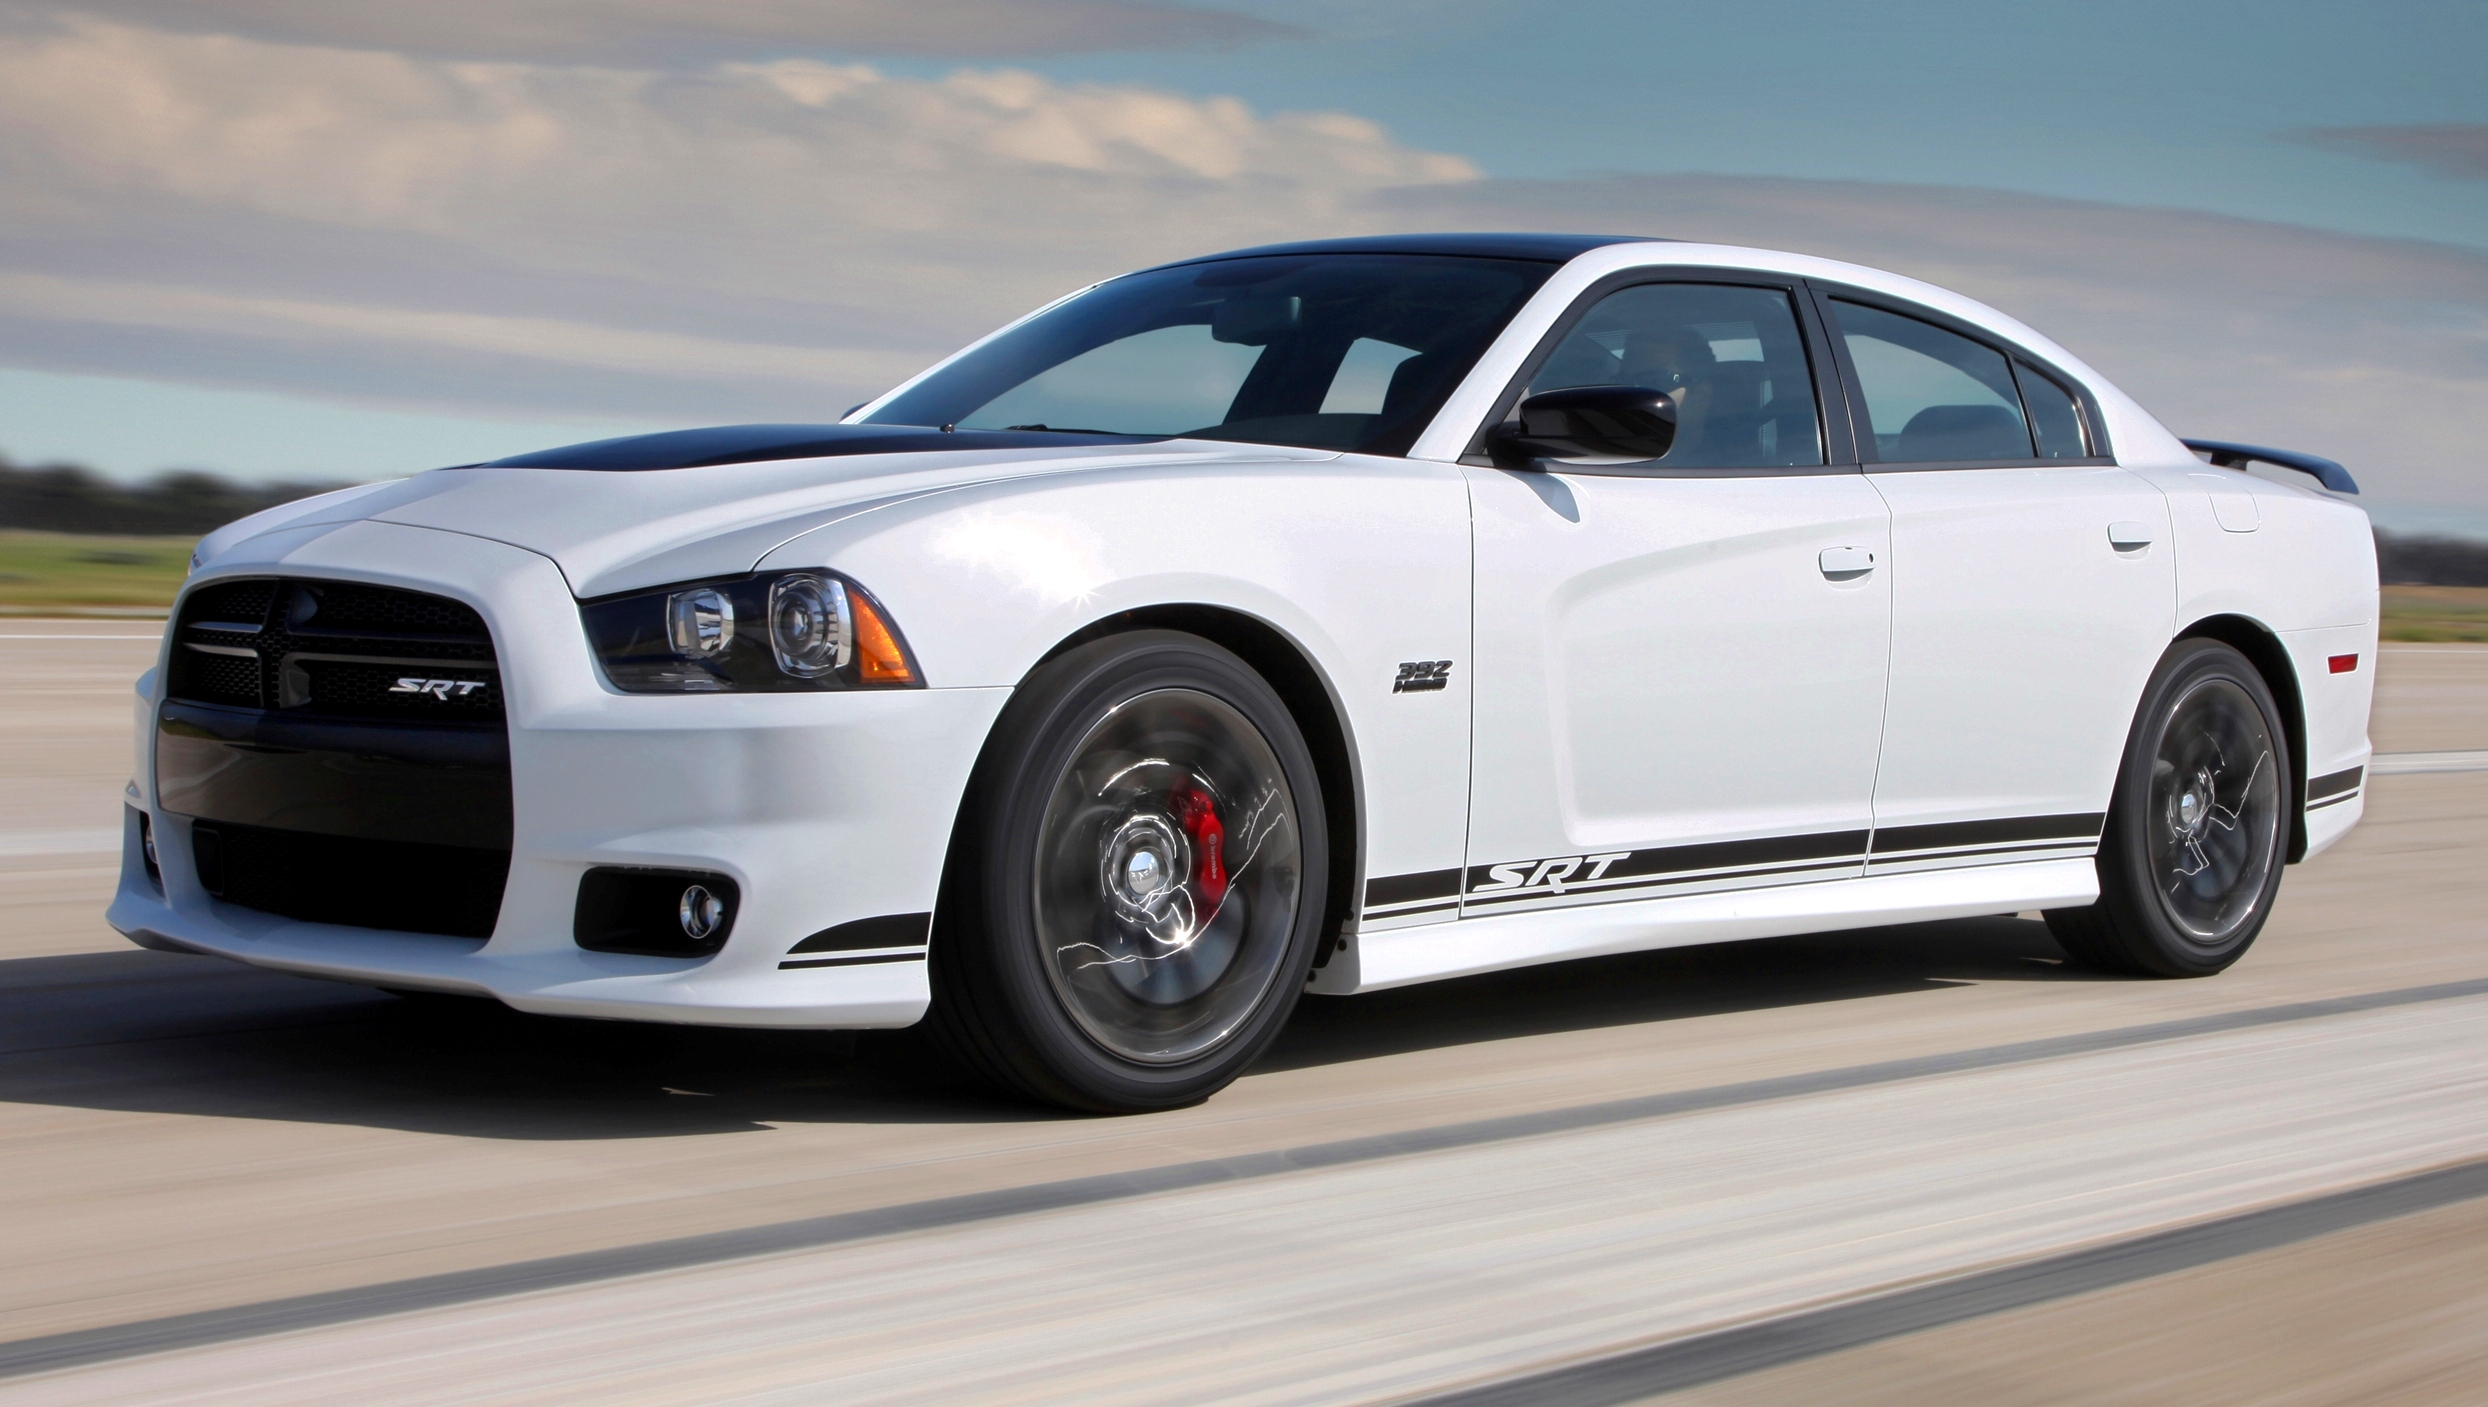 2014 Dodge Charger SRT | Top Sd